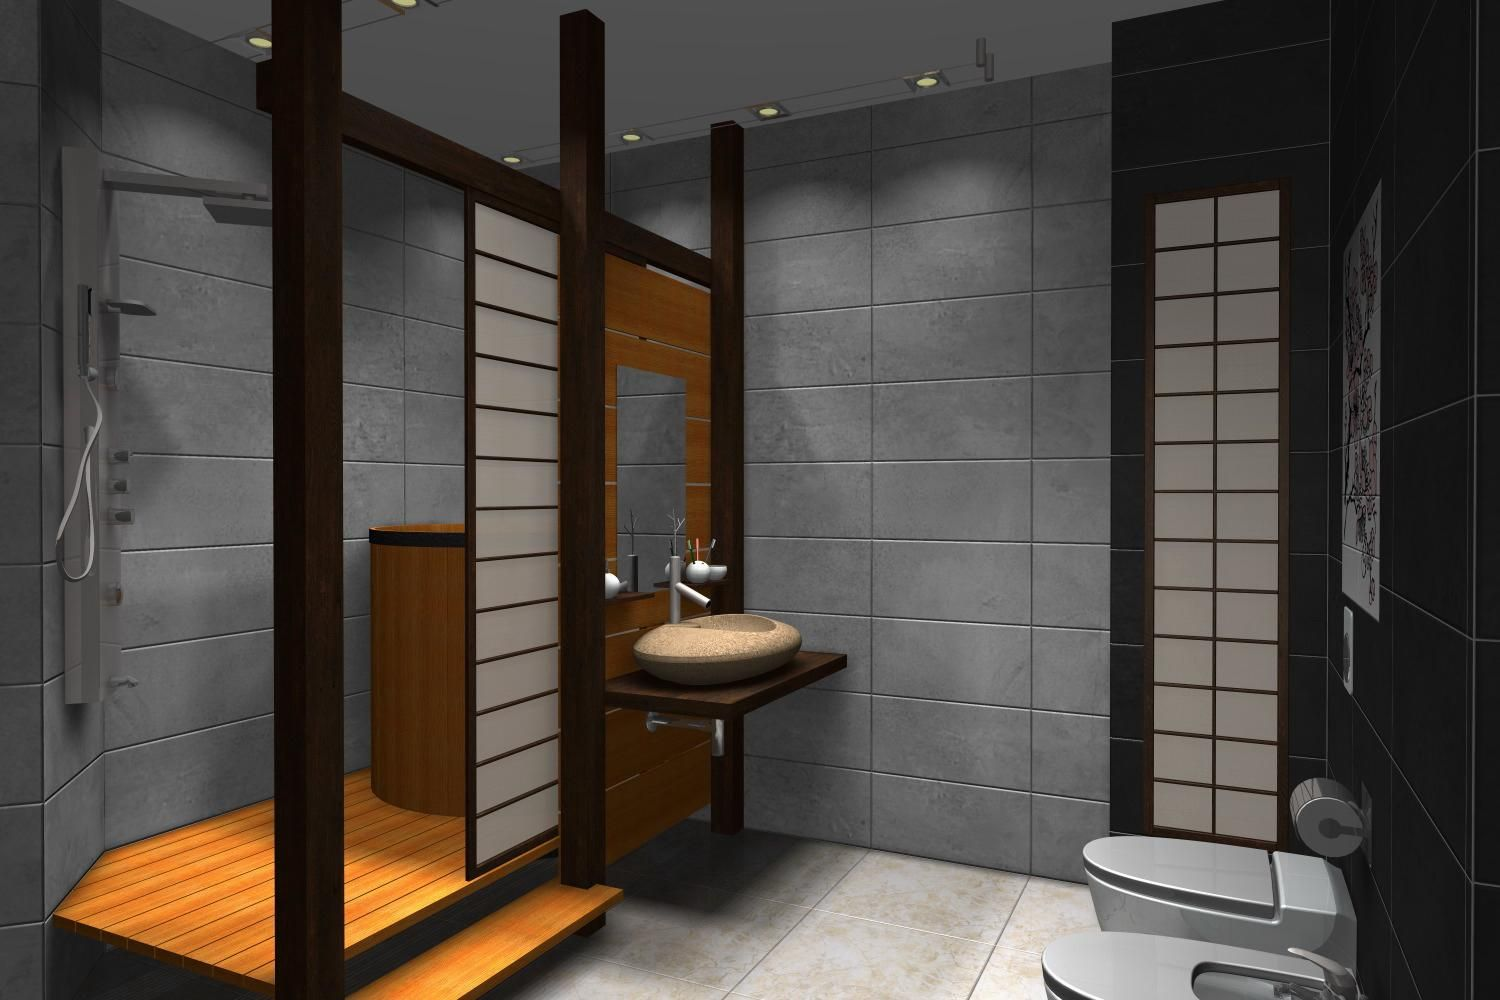 antique bathroom design ideas japanese sanyuanit - Japanese Bathroom Design